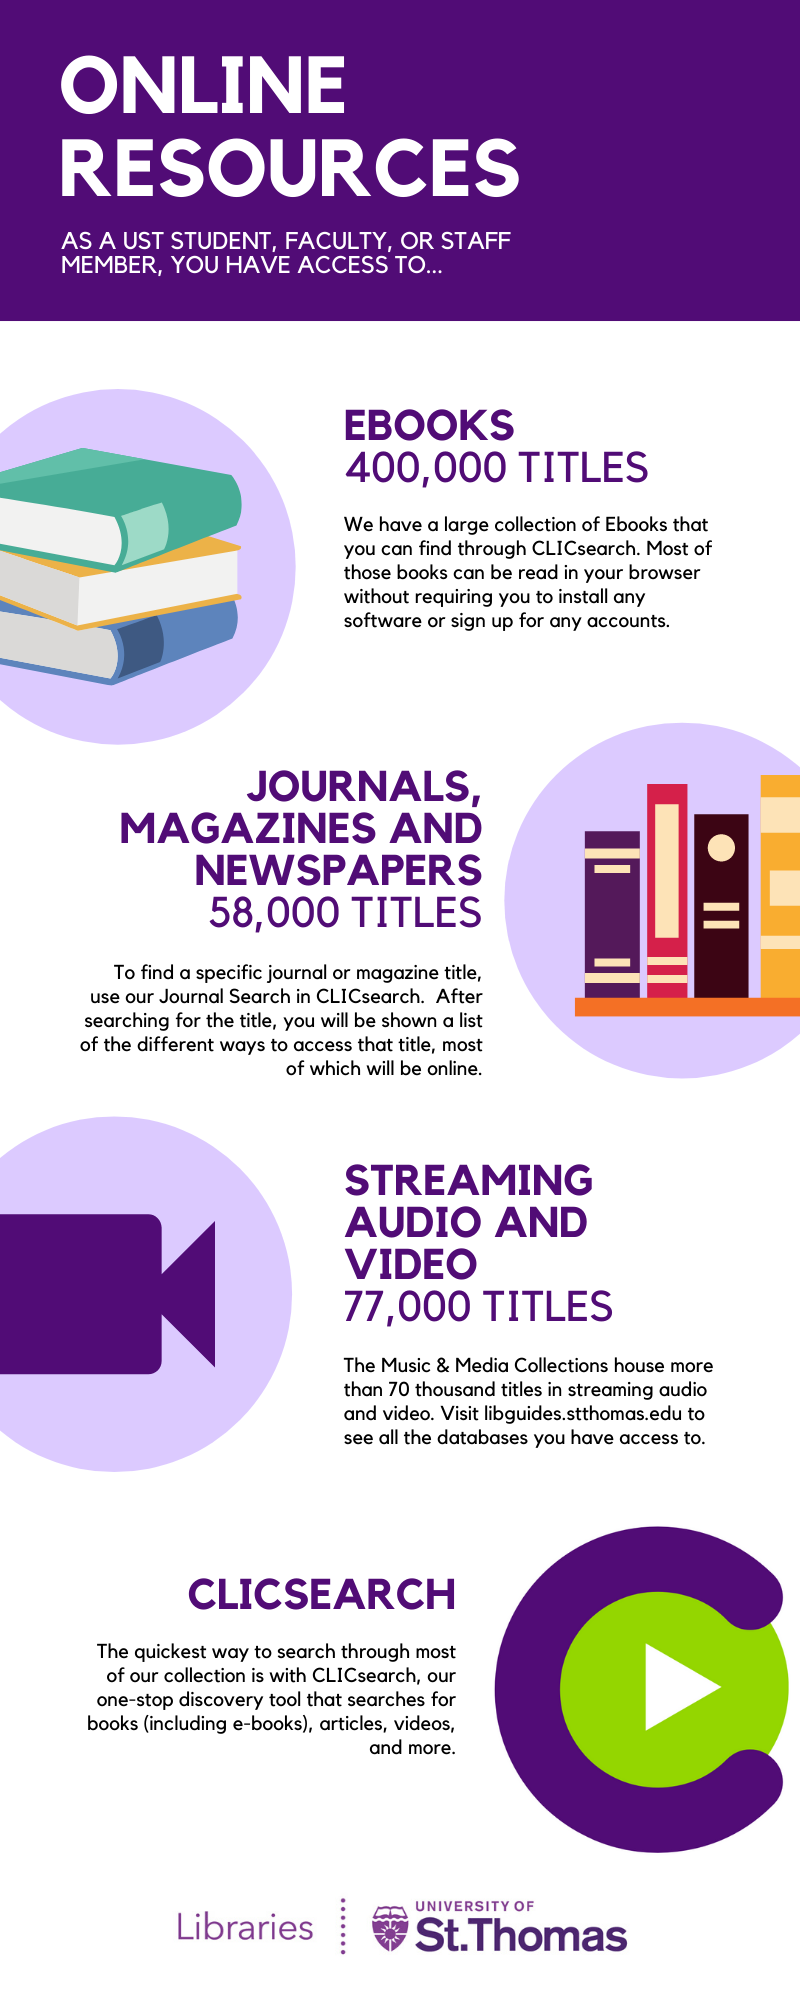 An infographic describing the types of online resources such as ebooks, newspapers, journals, and streaming media